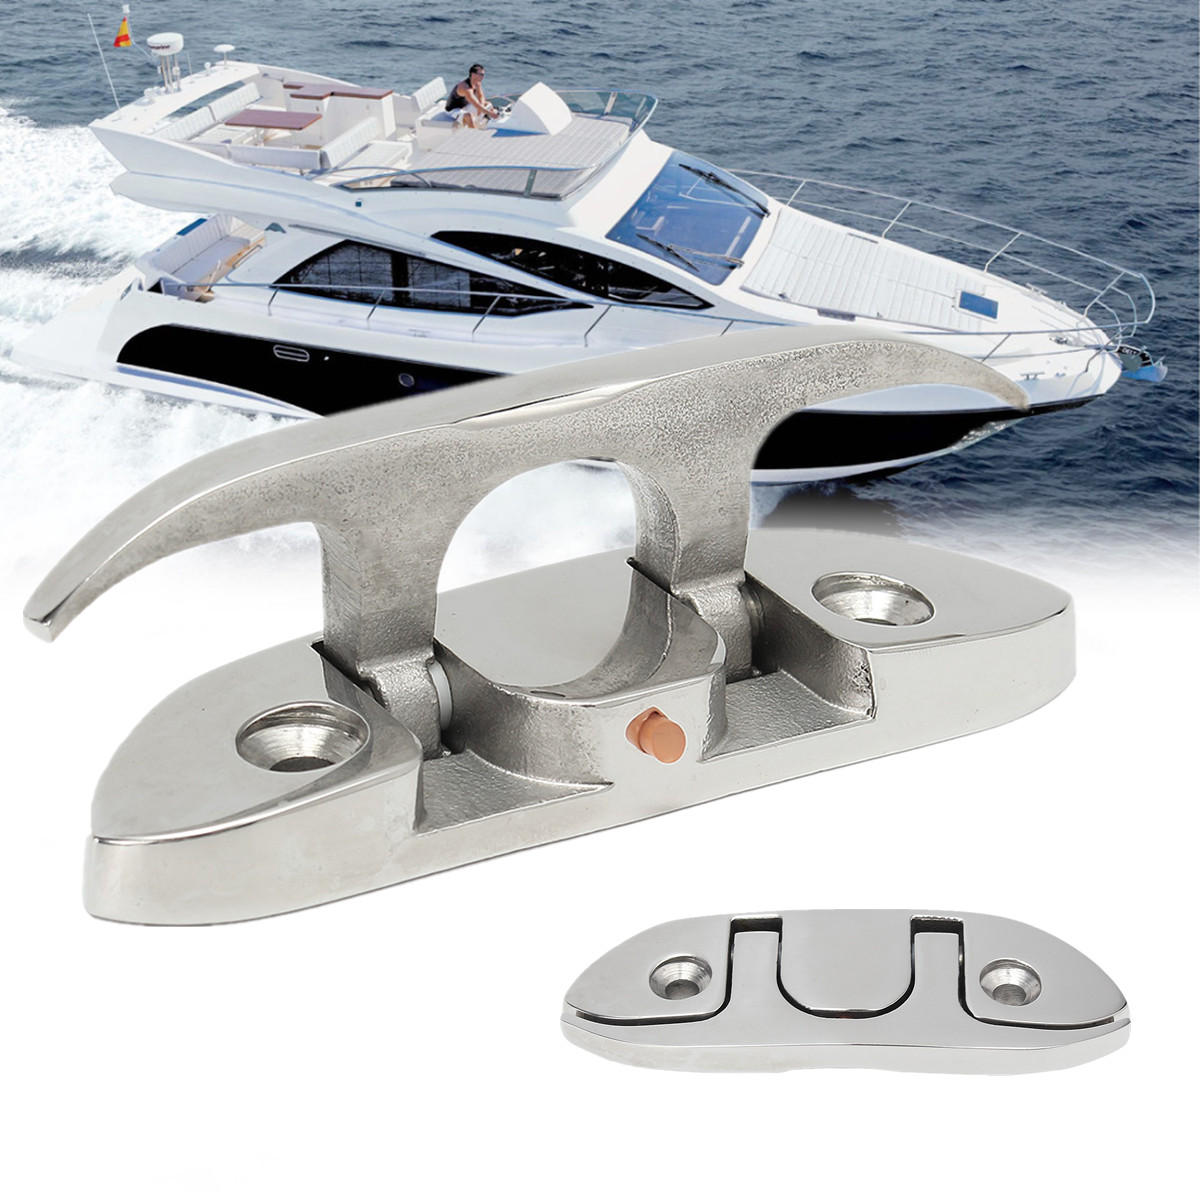 Stainless Steel 316 Folding Cleat Mount Marine Boat Hardware